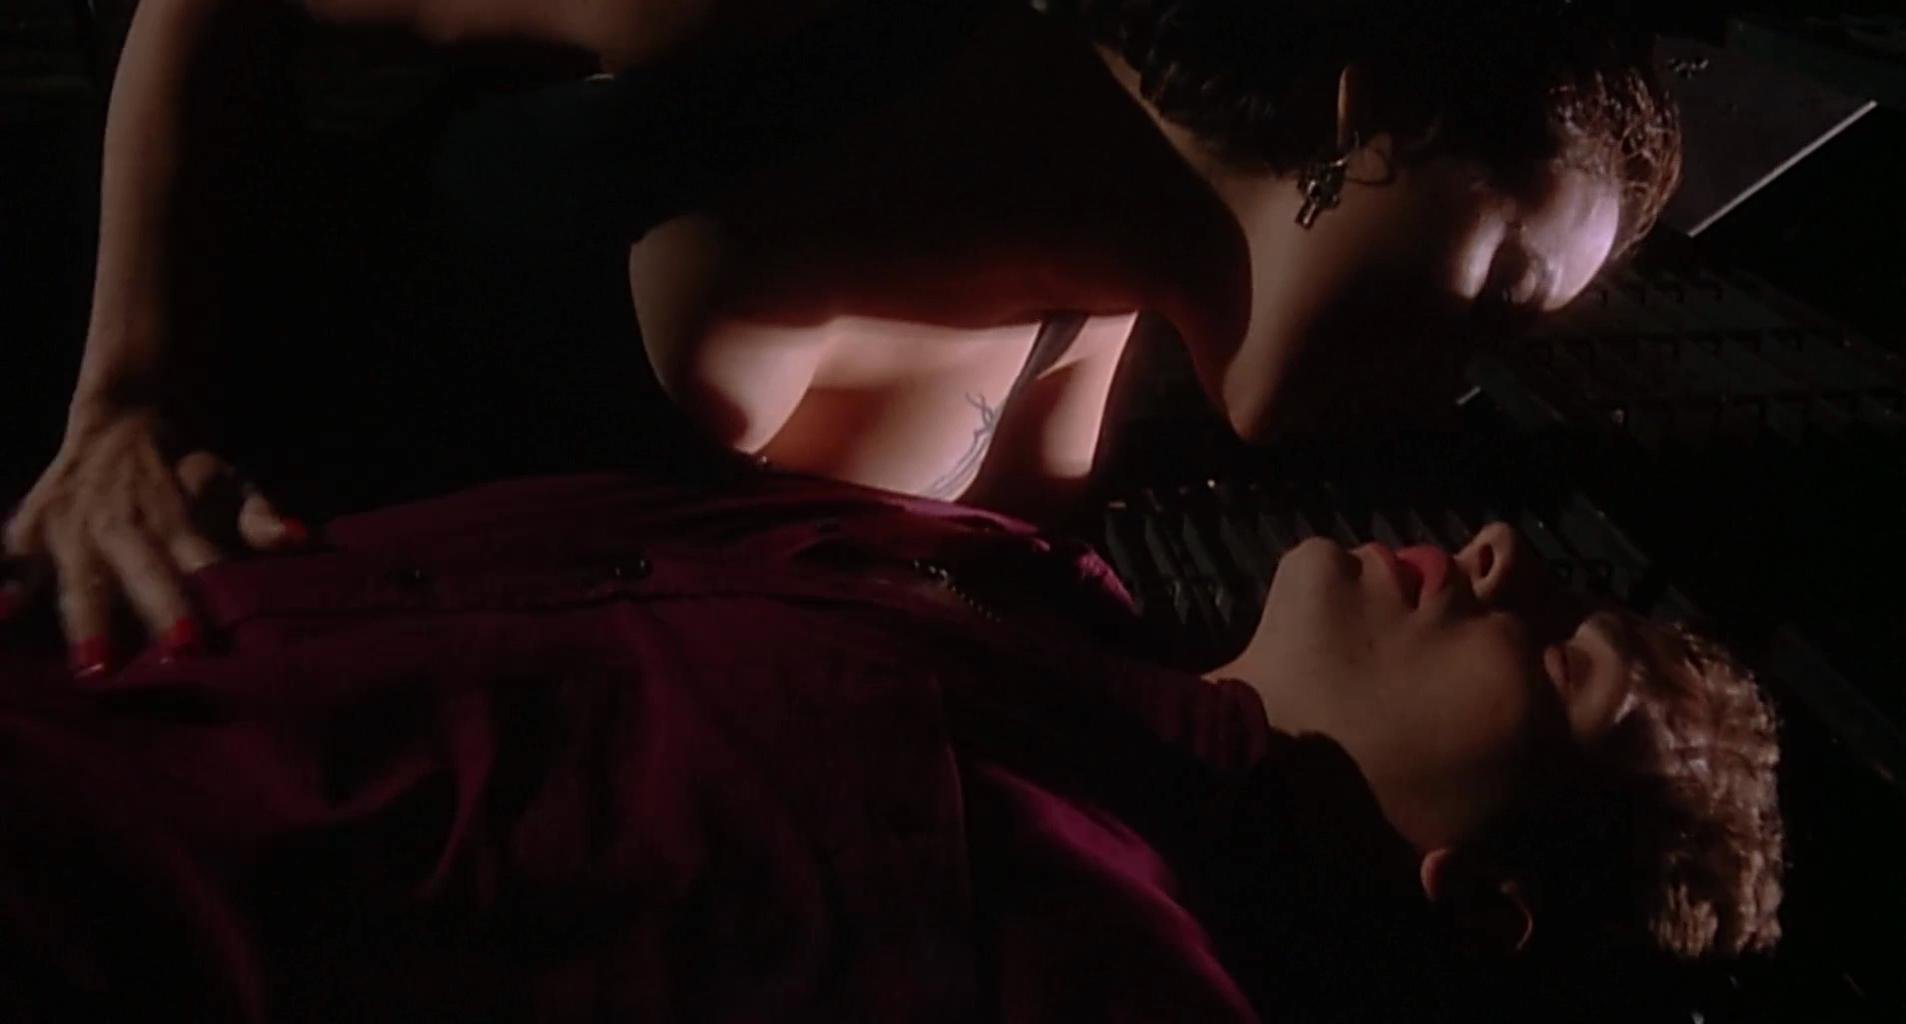 Jennifer Tilly Nudes 26